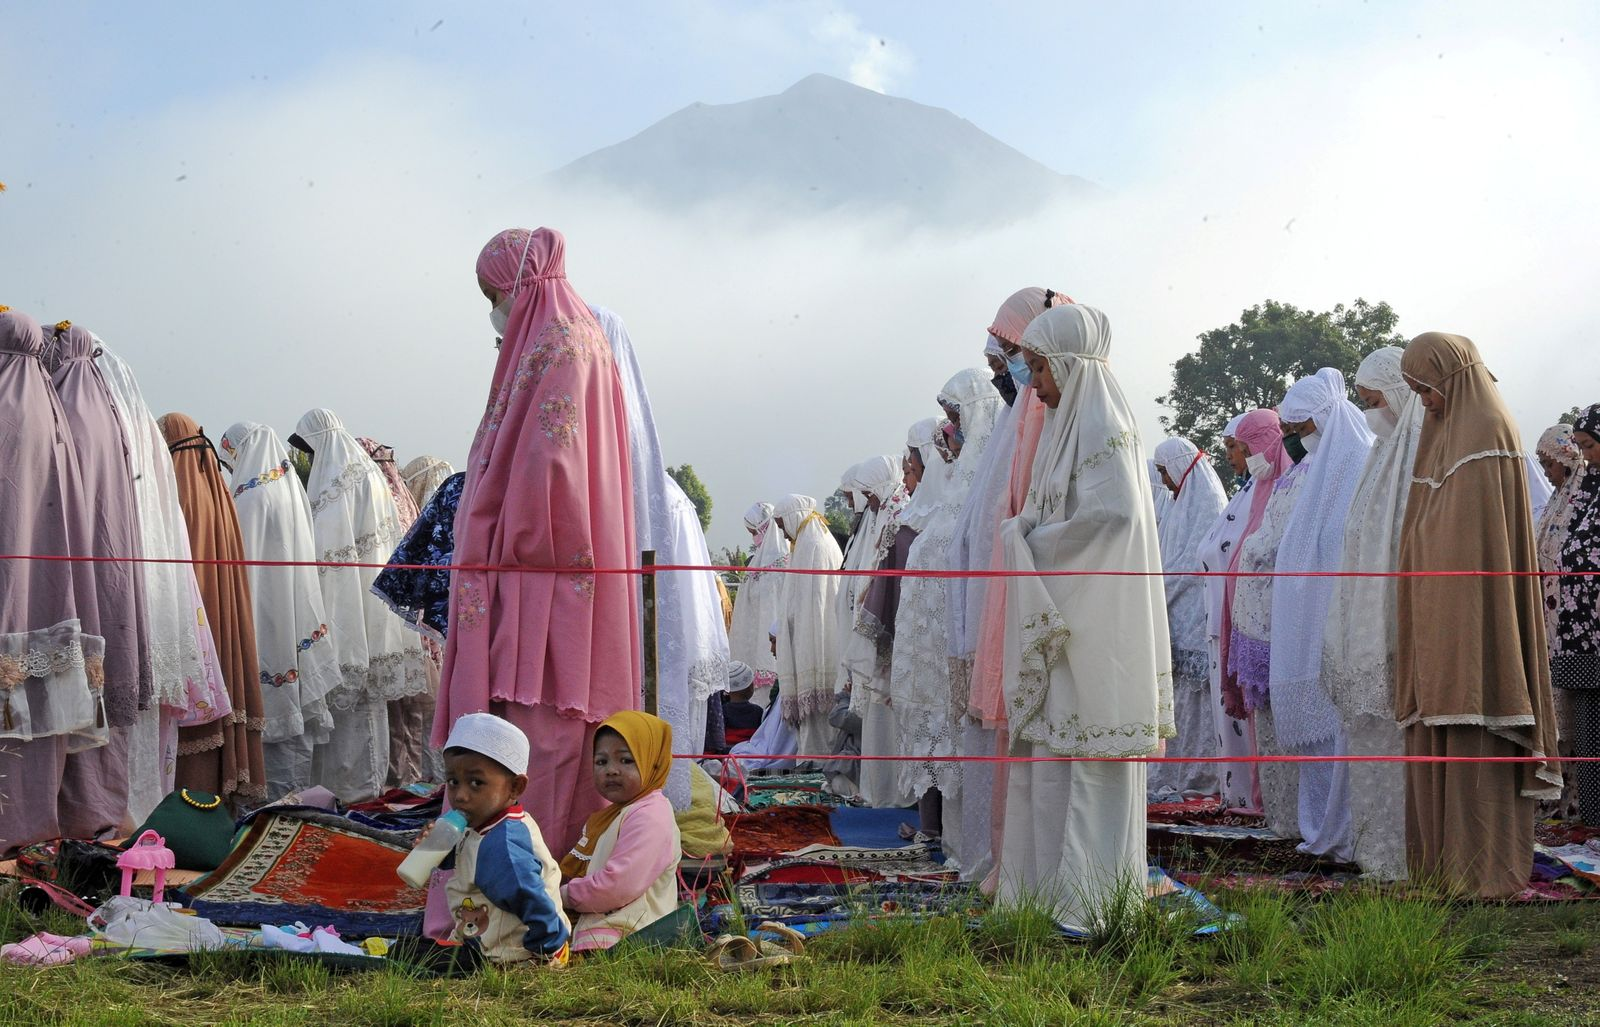 Indonesian Muslims attend a mass prayer session at Gunung Labu field as Mount Kerinci Volcano is seen in the background during Eid al-Fitr, marking the end of the holy fasting month of Ramadan, in West Kayu Aro, Kerinci